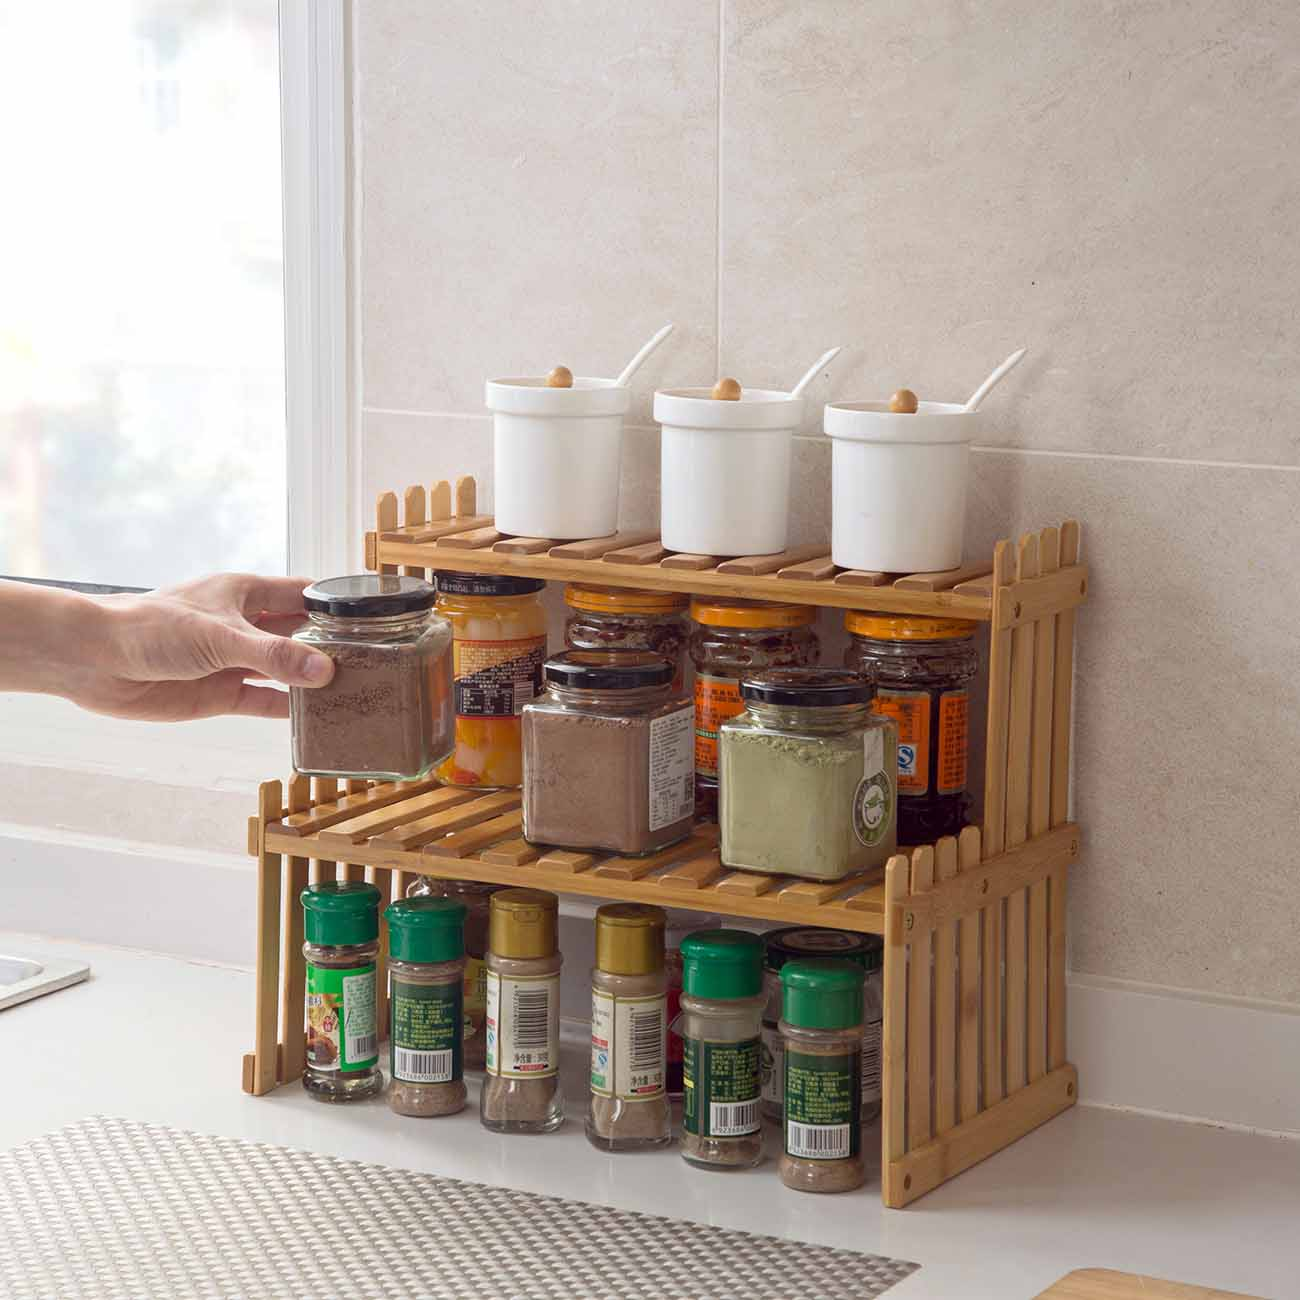 2 Layers Bamboo Storage Rack Kitchen Spice Jar Bottle Seasoning Rack Decoration Organizer Shelf Home Desktop Racks